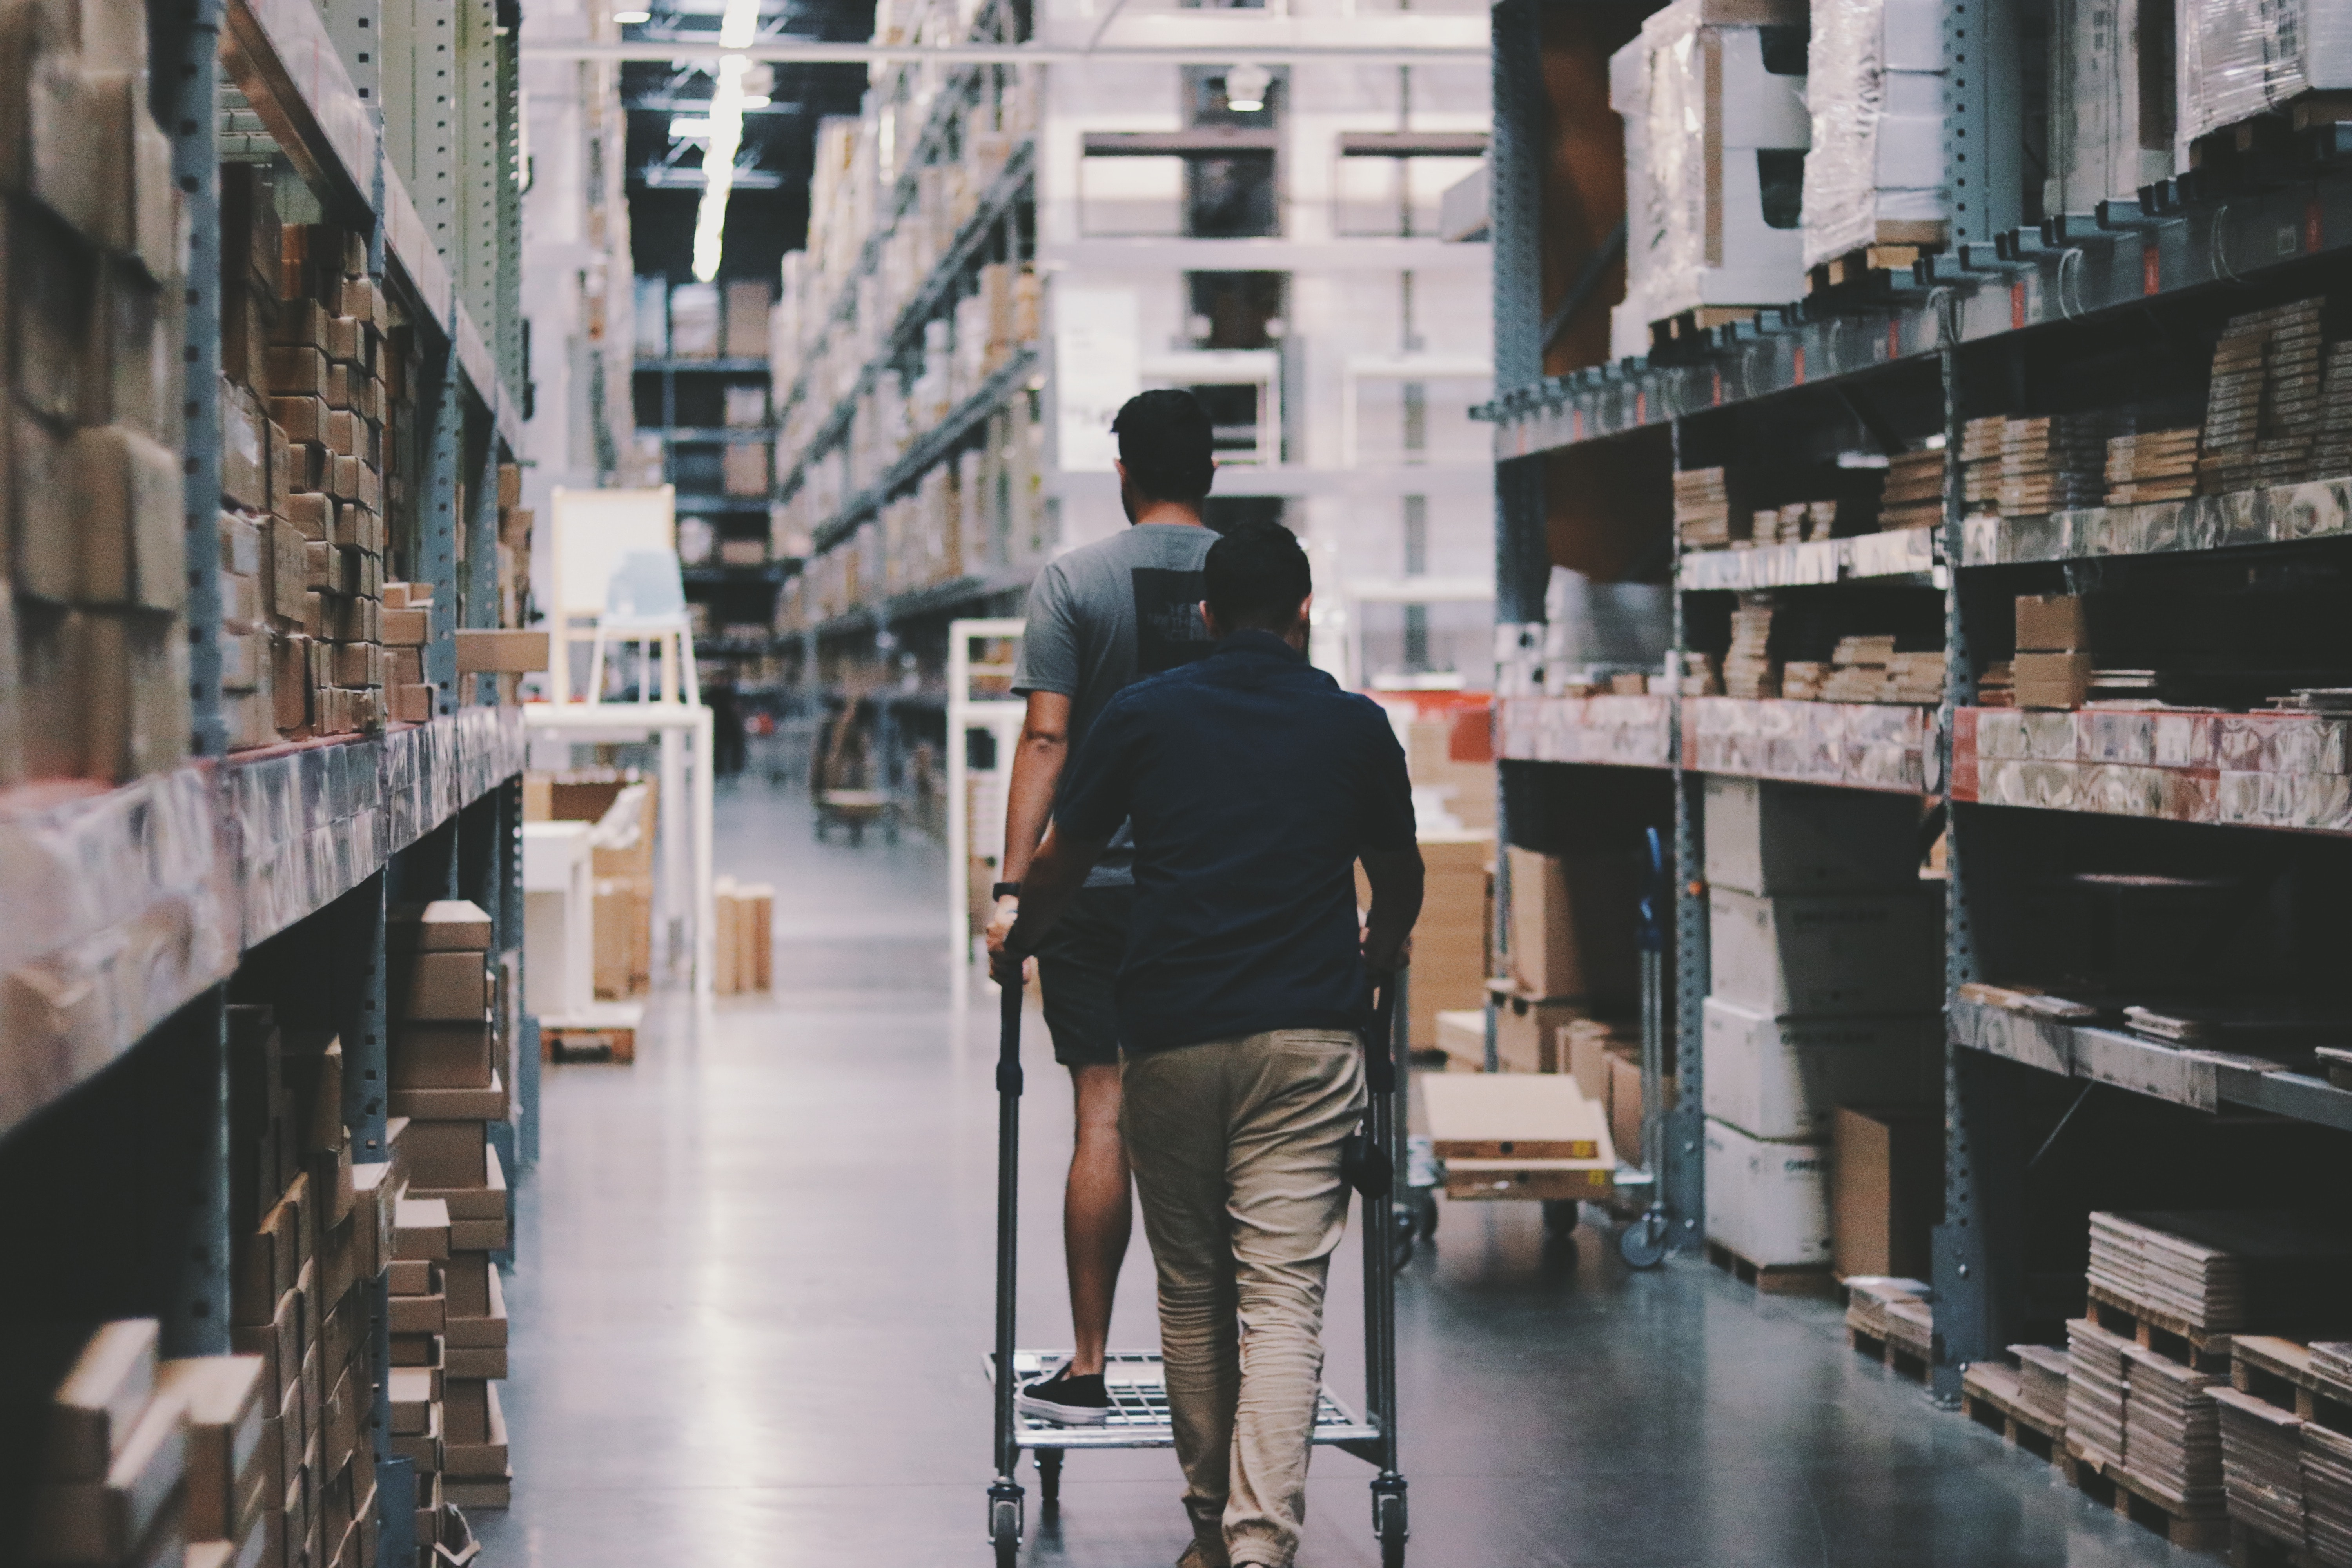 Warehouse Space Optimization: 17 Tactics That Can Be Used to